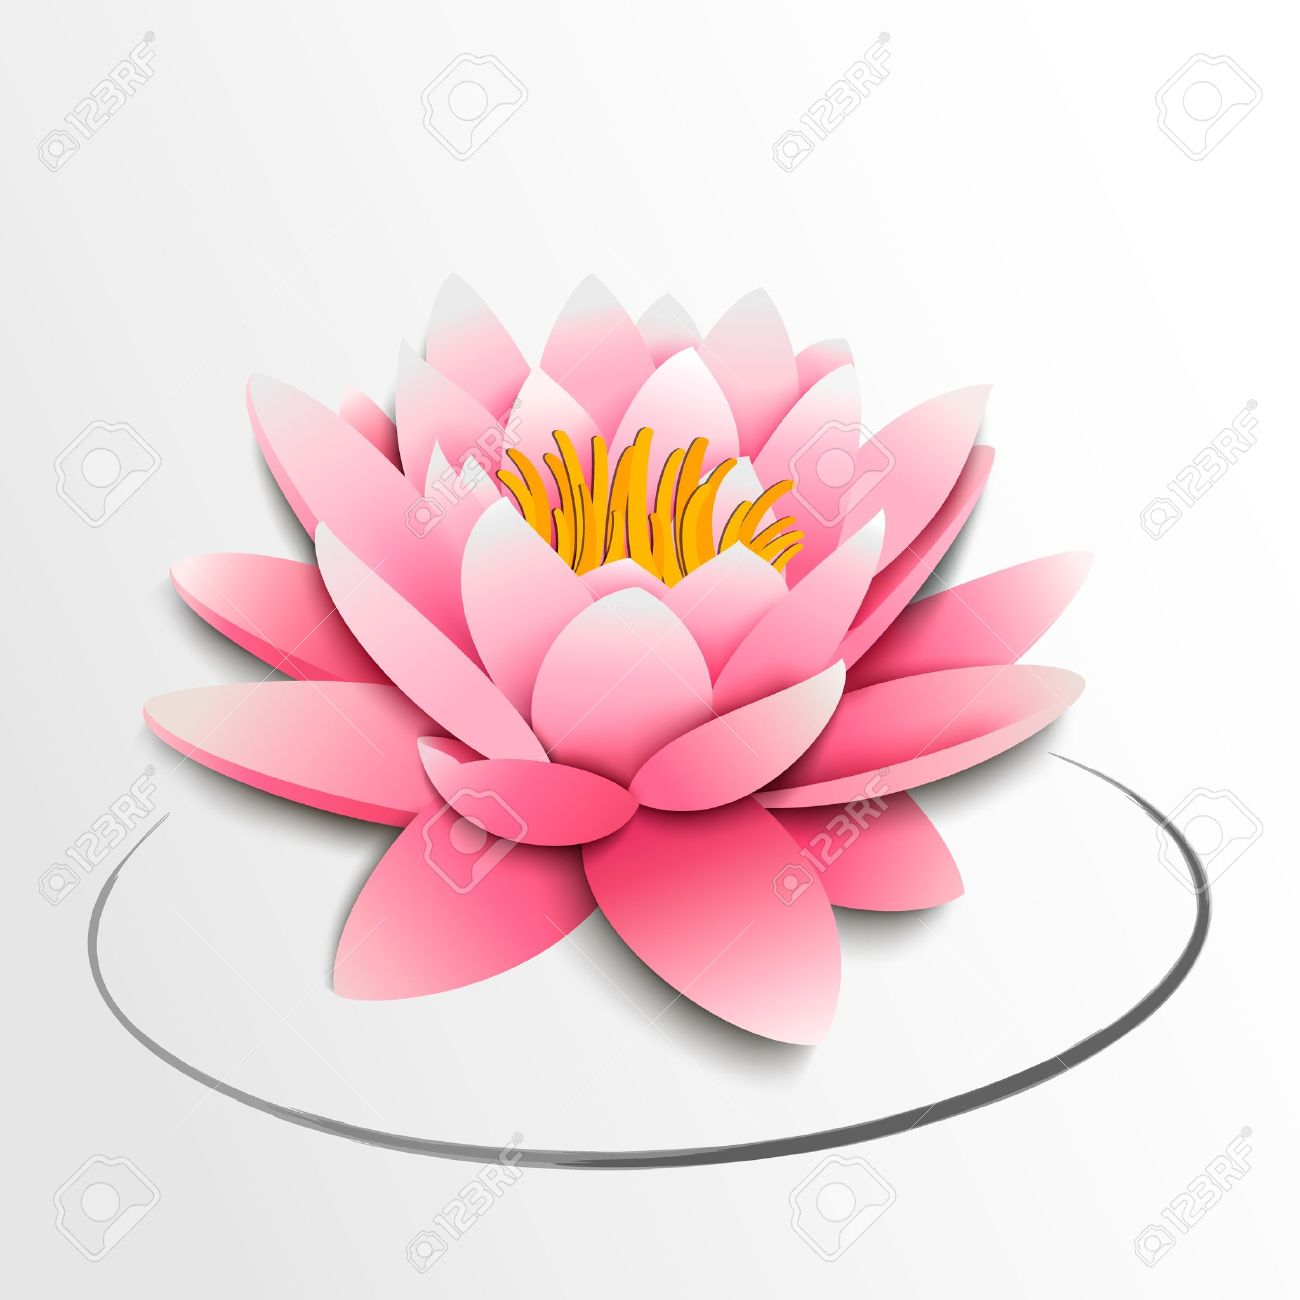 Lotus Flower Images Clip Art - Floral delivery